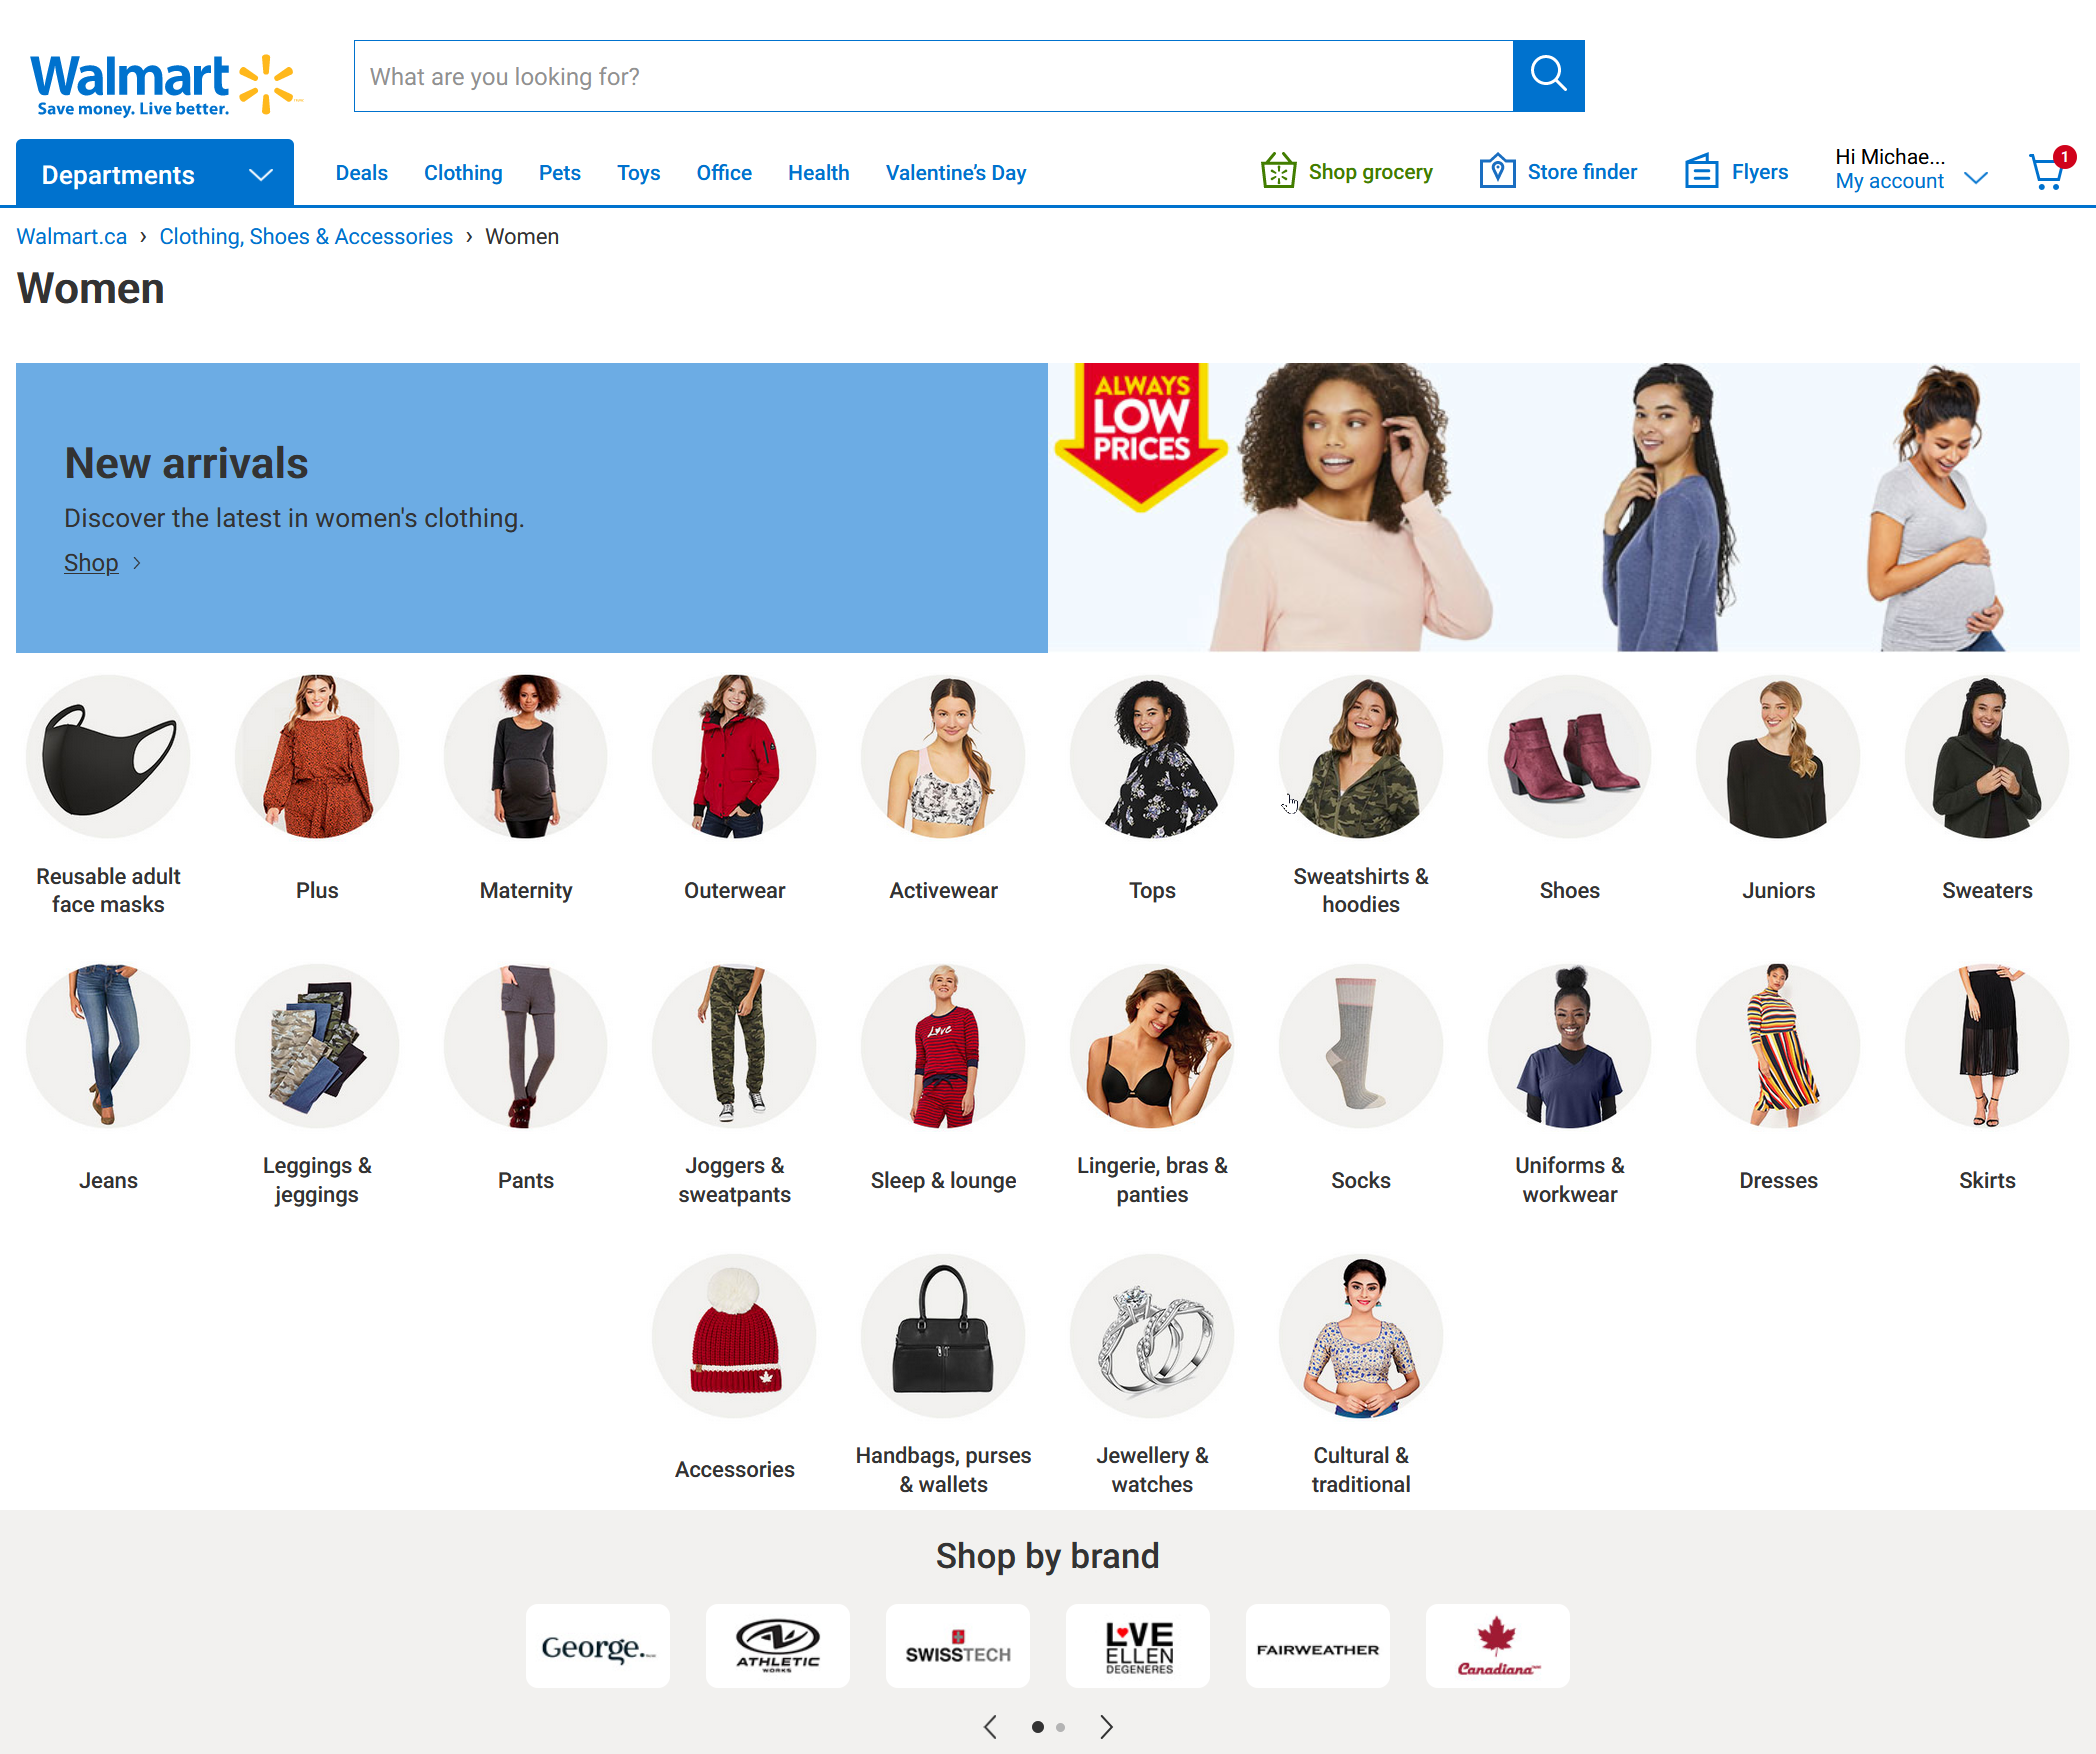 Walmart visual search filters